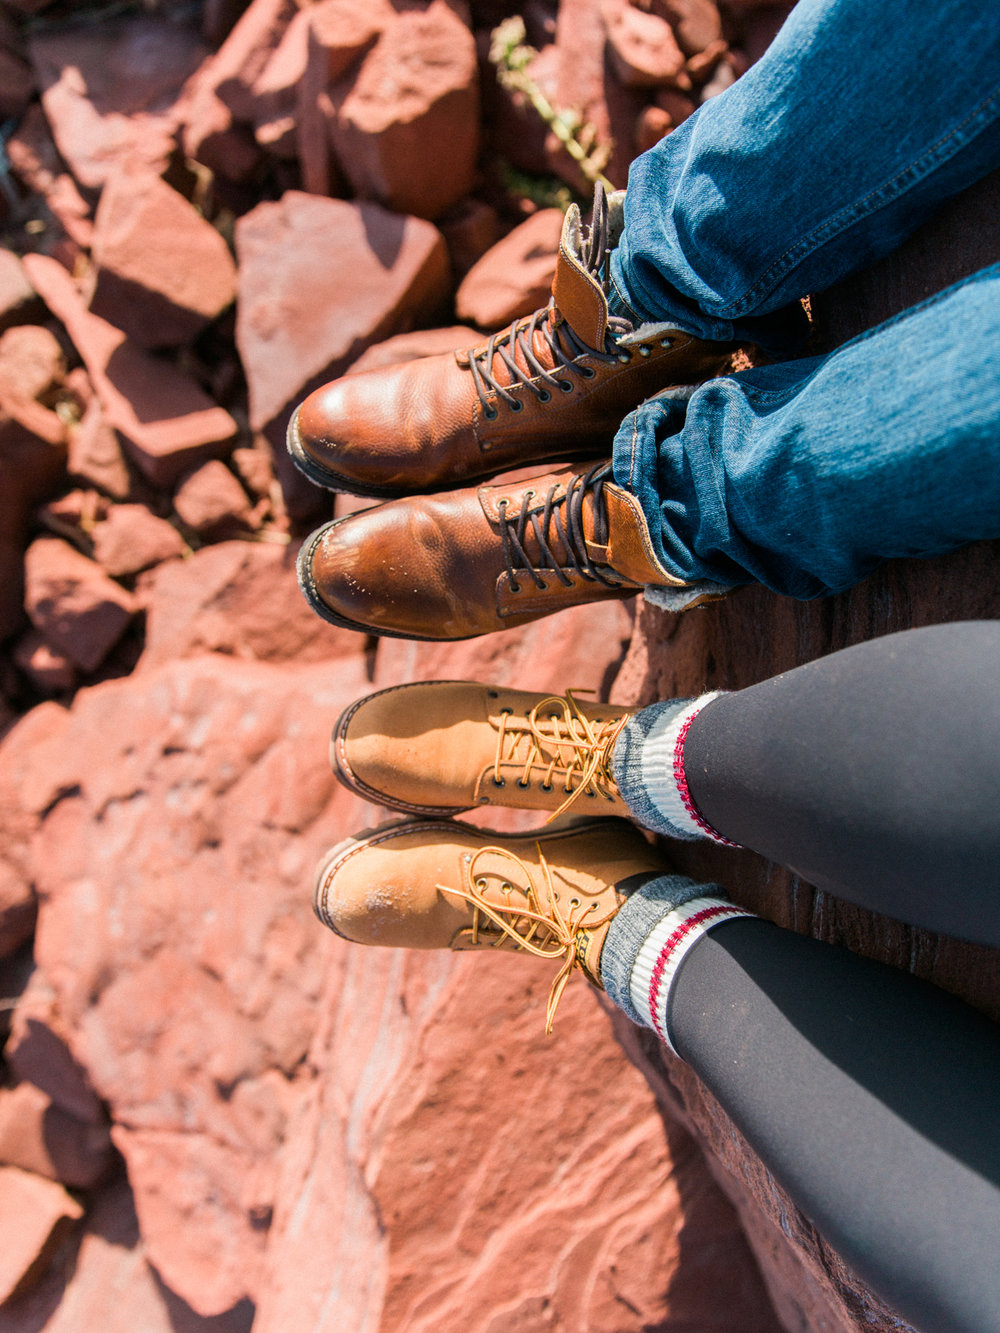 This was my favourite moment of the weekend. I climbed up to sit with Amir and looking out at the ocean together was so peaceful, but most importantly these boots looked great at this angle (haha!) Side note: Roots - if you are looking for a brand ambassador I am definitely available for that role!